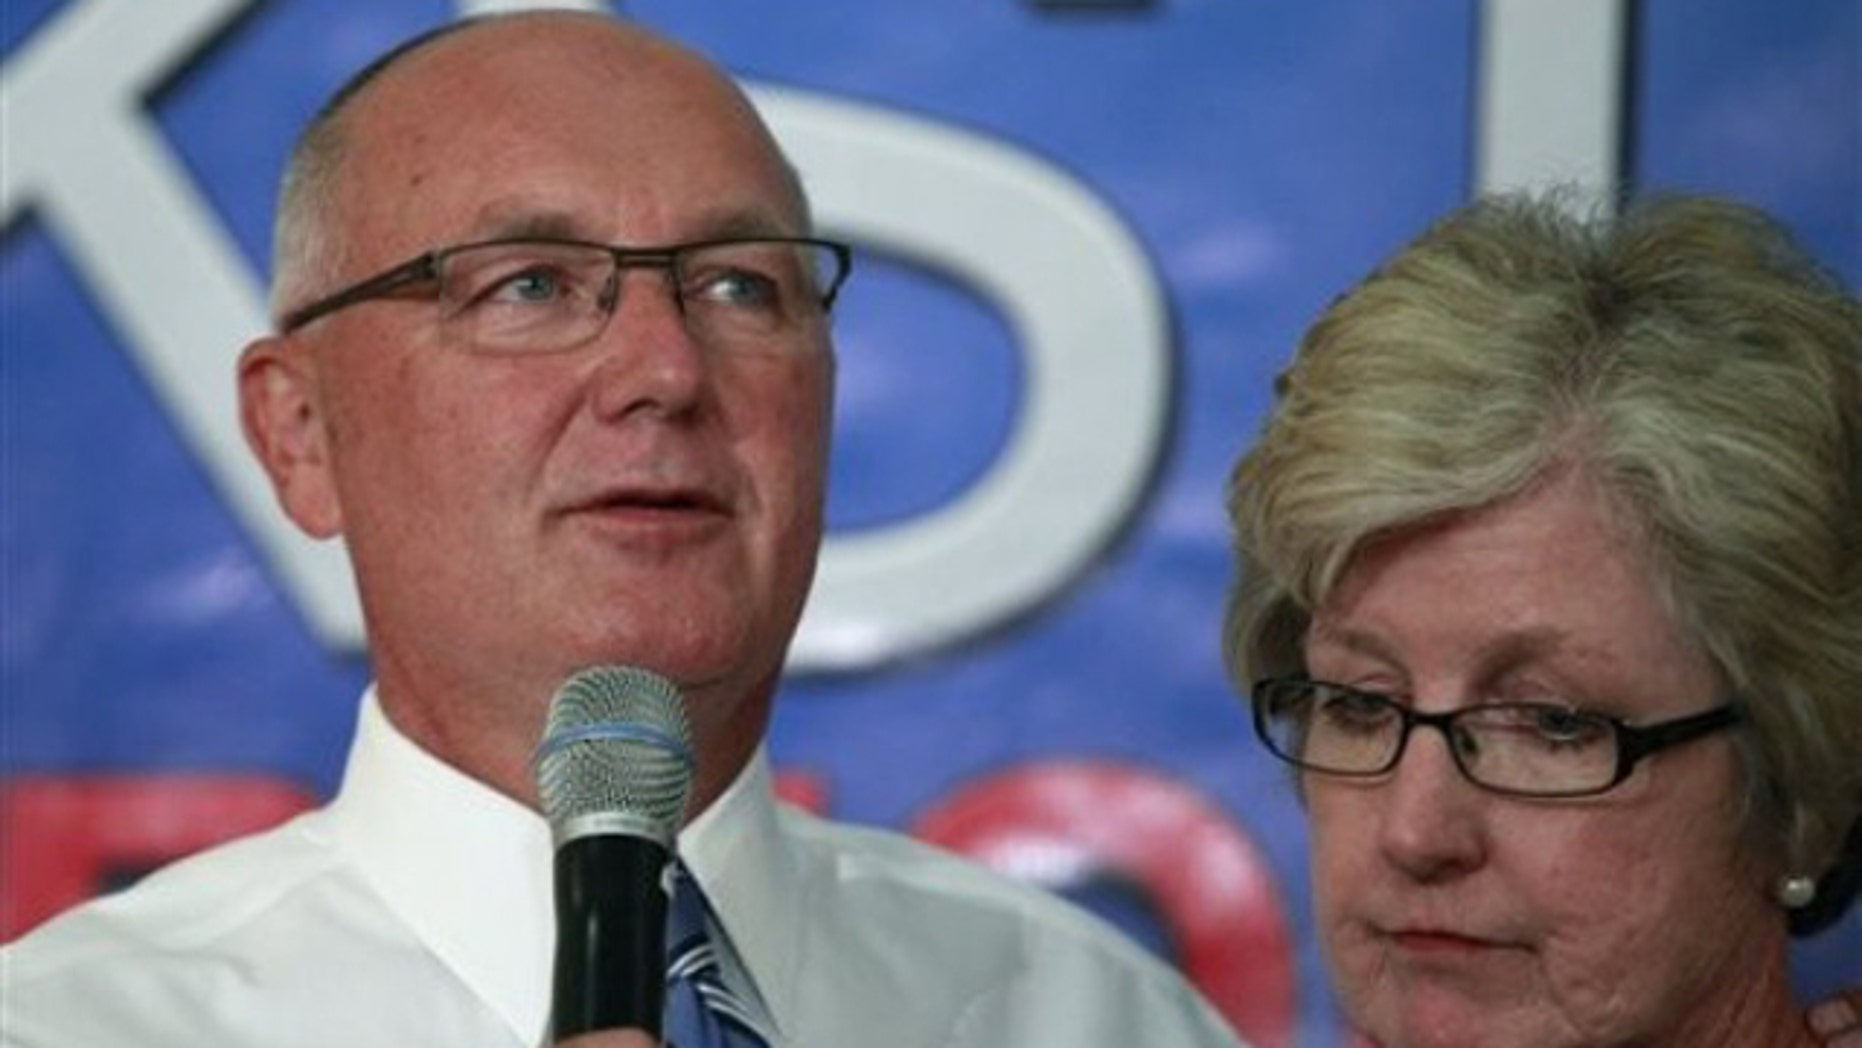 In this Aug. 3, 2010, photo, then-Rep. Pete Hoekstra stands with his wife, Diane, as he concedes during an election gathering for the Michigan gubernatorial primary in Hudsonville, Mich.